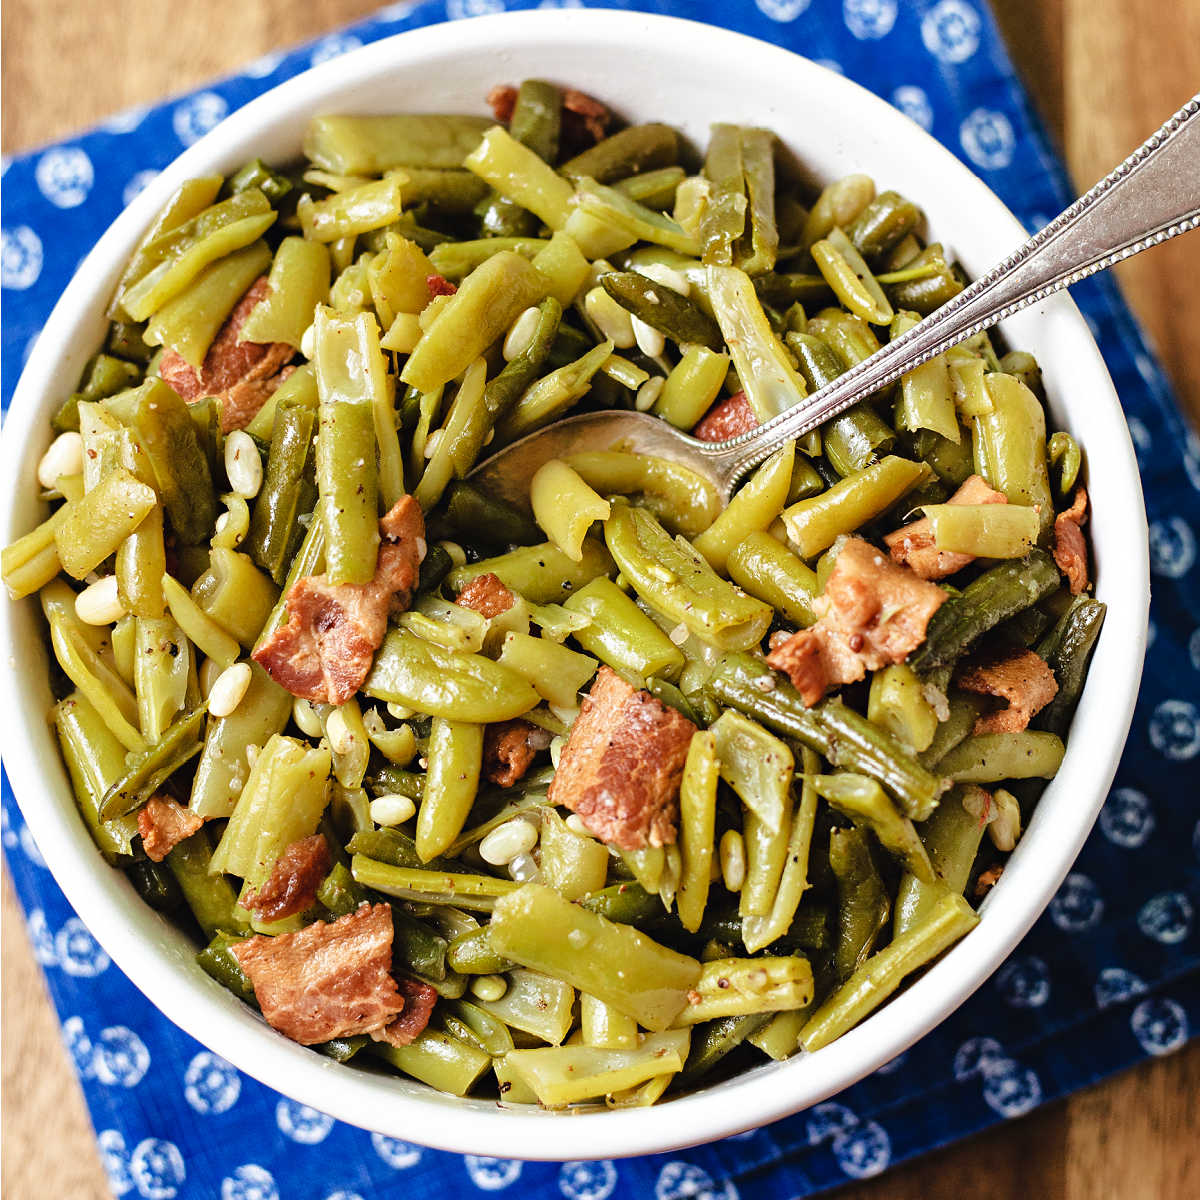 a bowl of green beans with a serving spoon sitting on a blue napkin on a wooden table.